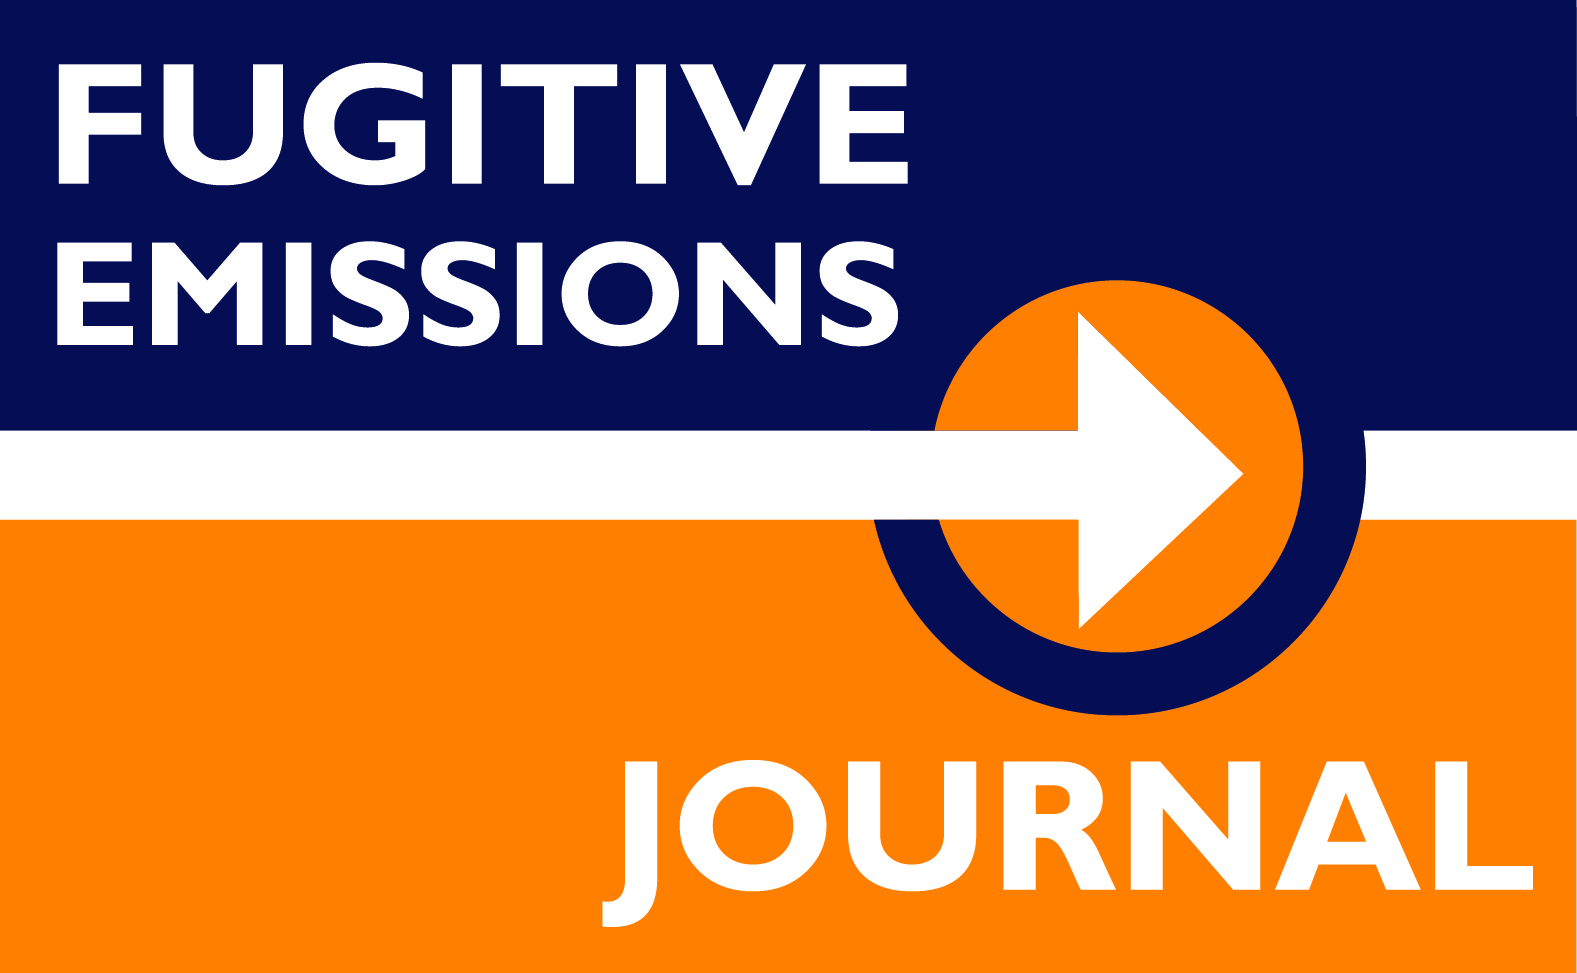 fugitive emissions journal logo